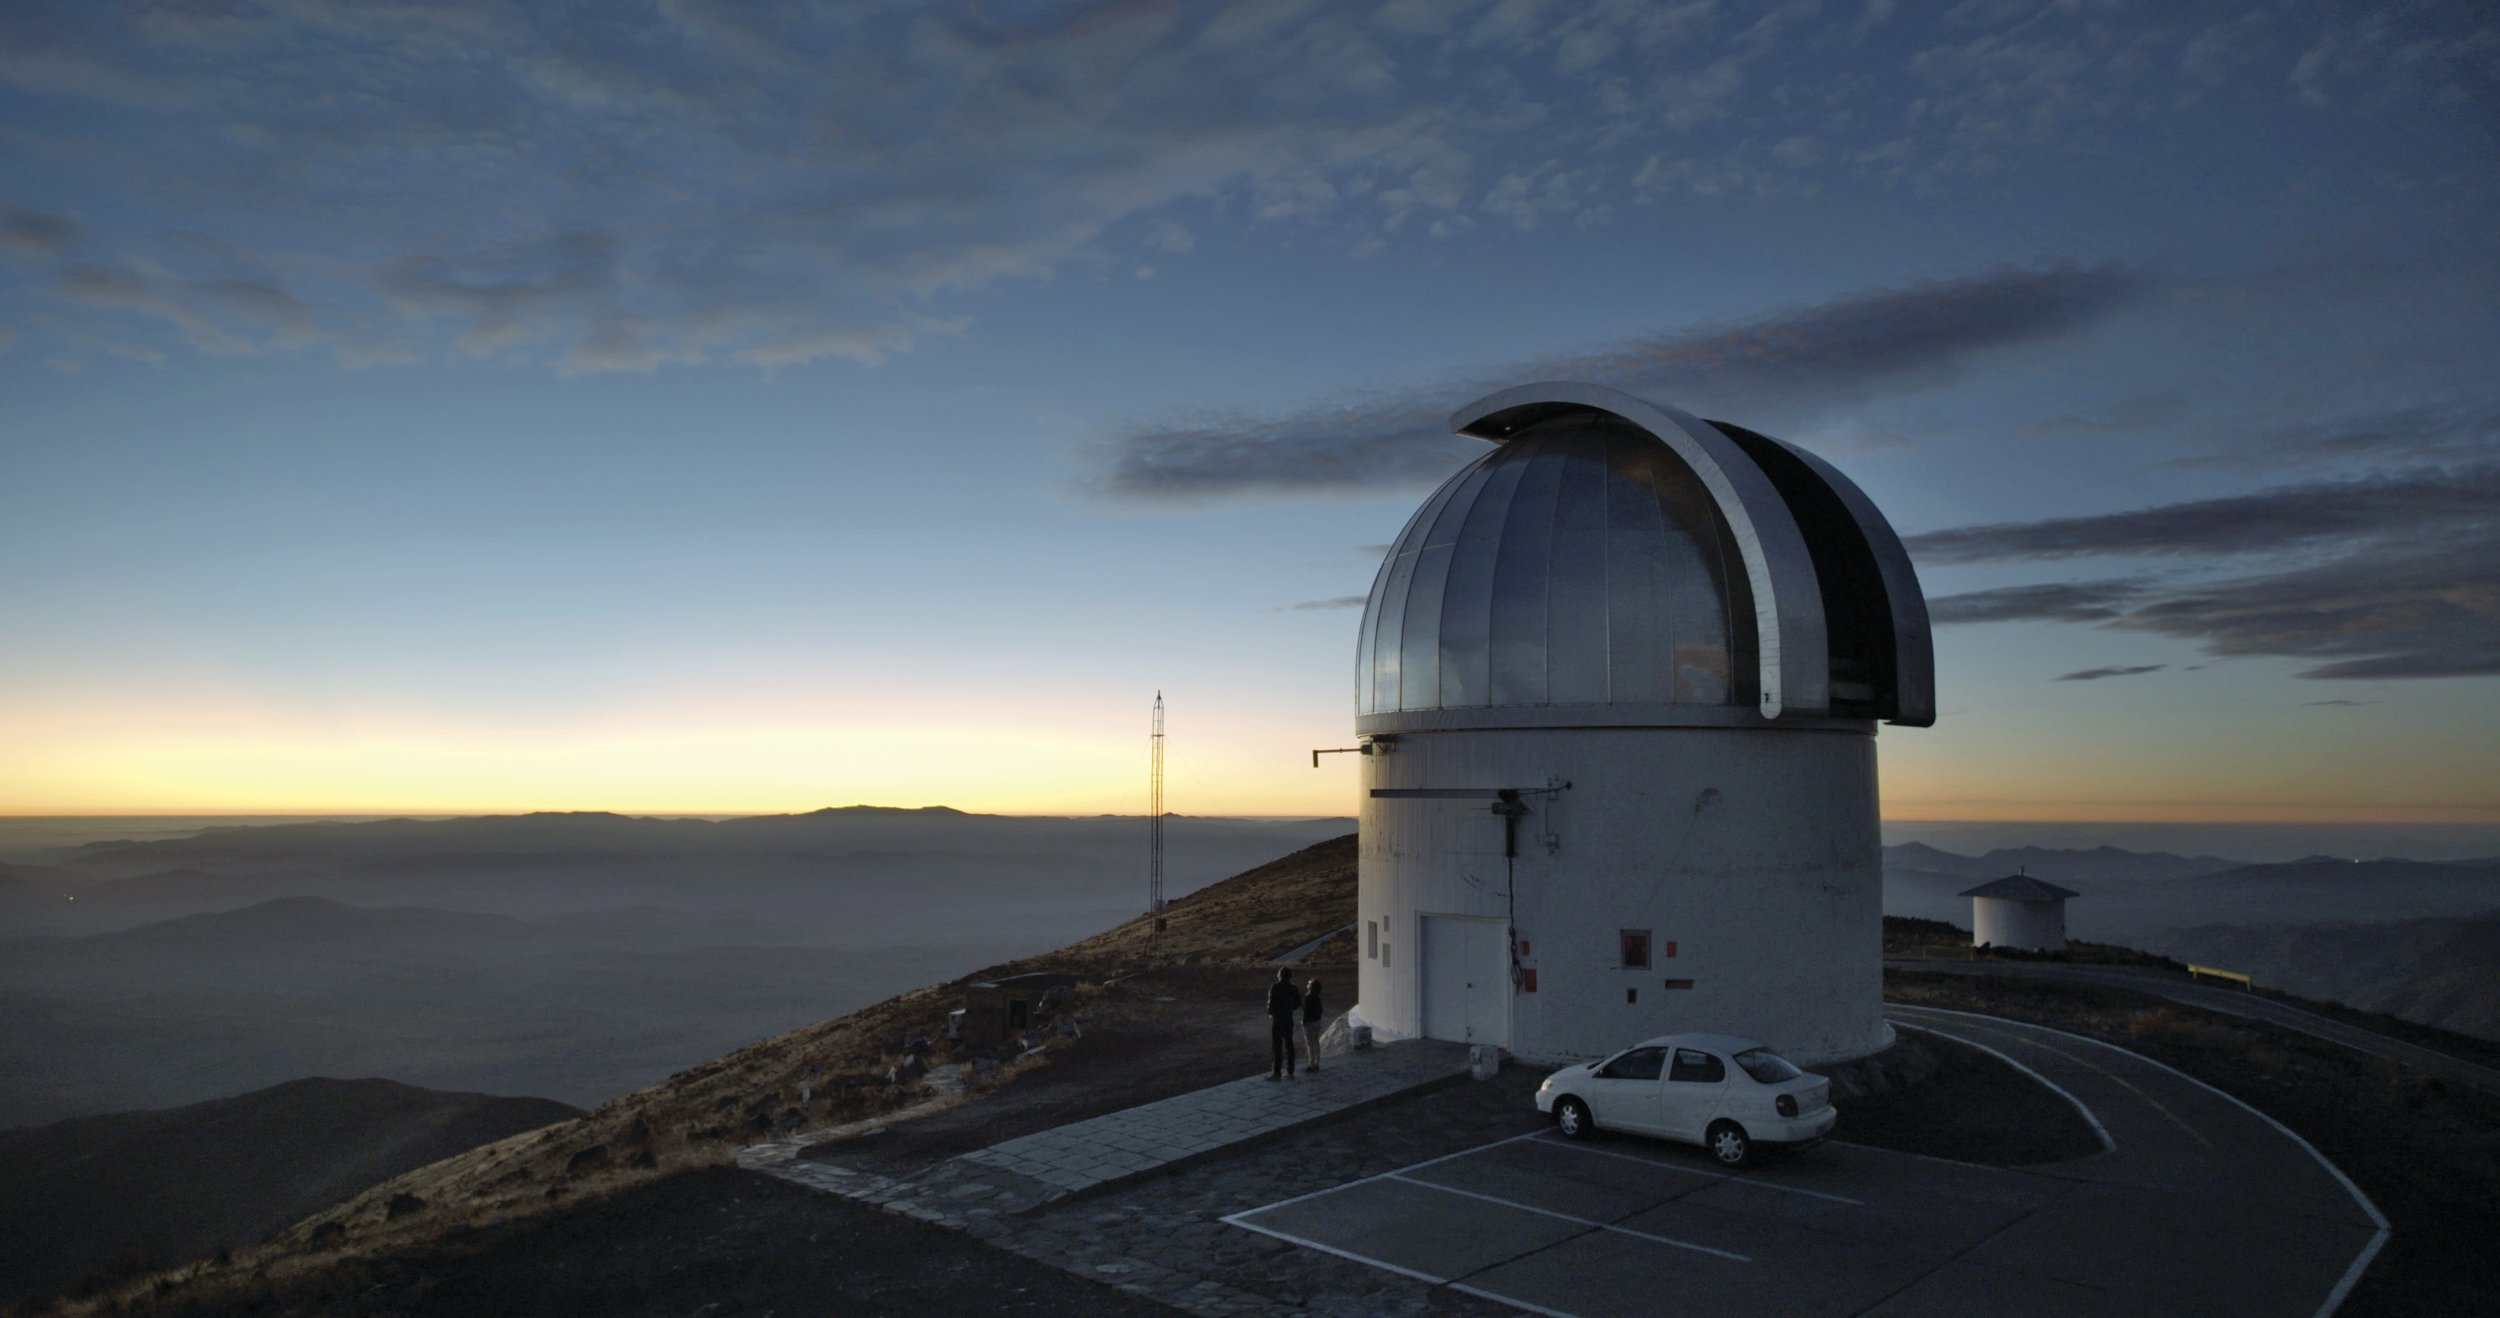 Las Campinas planet-hunting observatory in the profoundly moving sky-doc Cielo